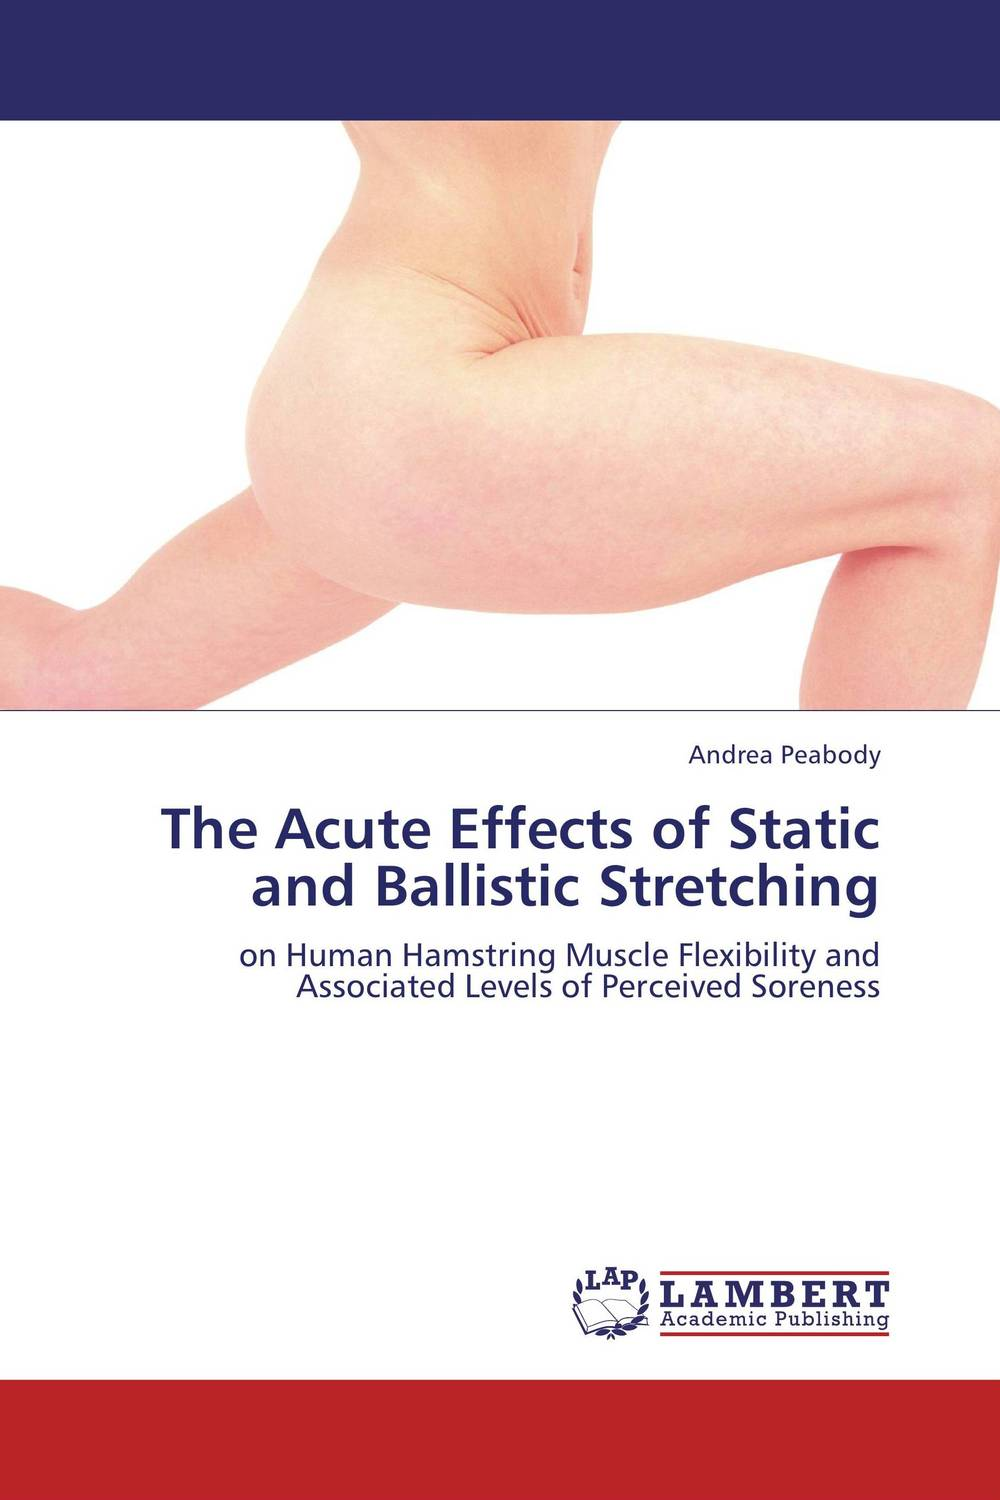 The Acute Effects of Static and Ballistic Stretching static stretch and hold relax techniques over hamstring